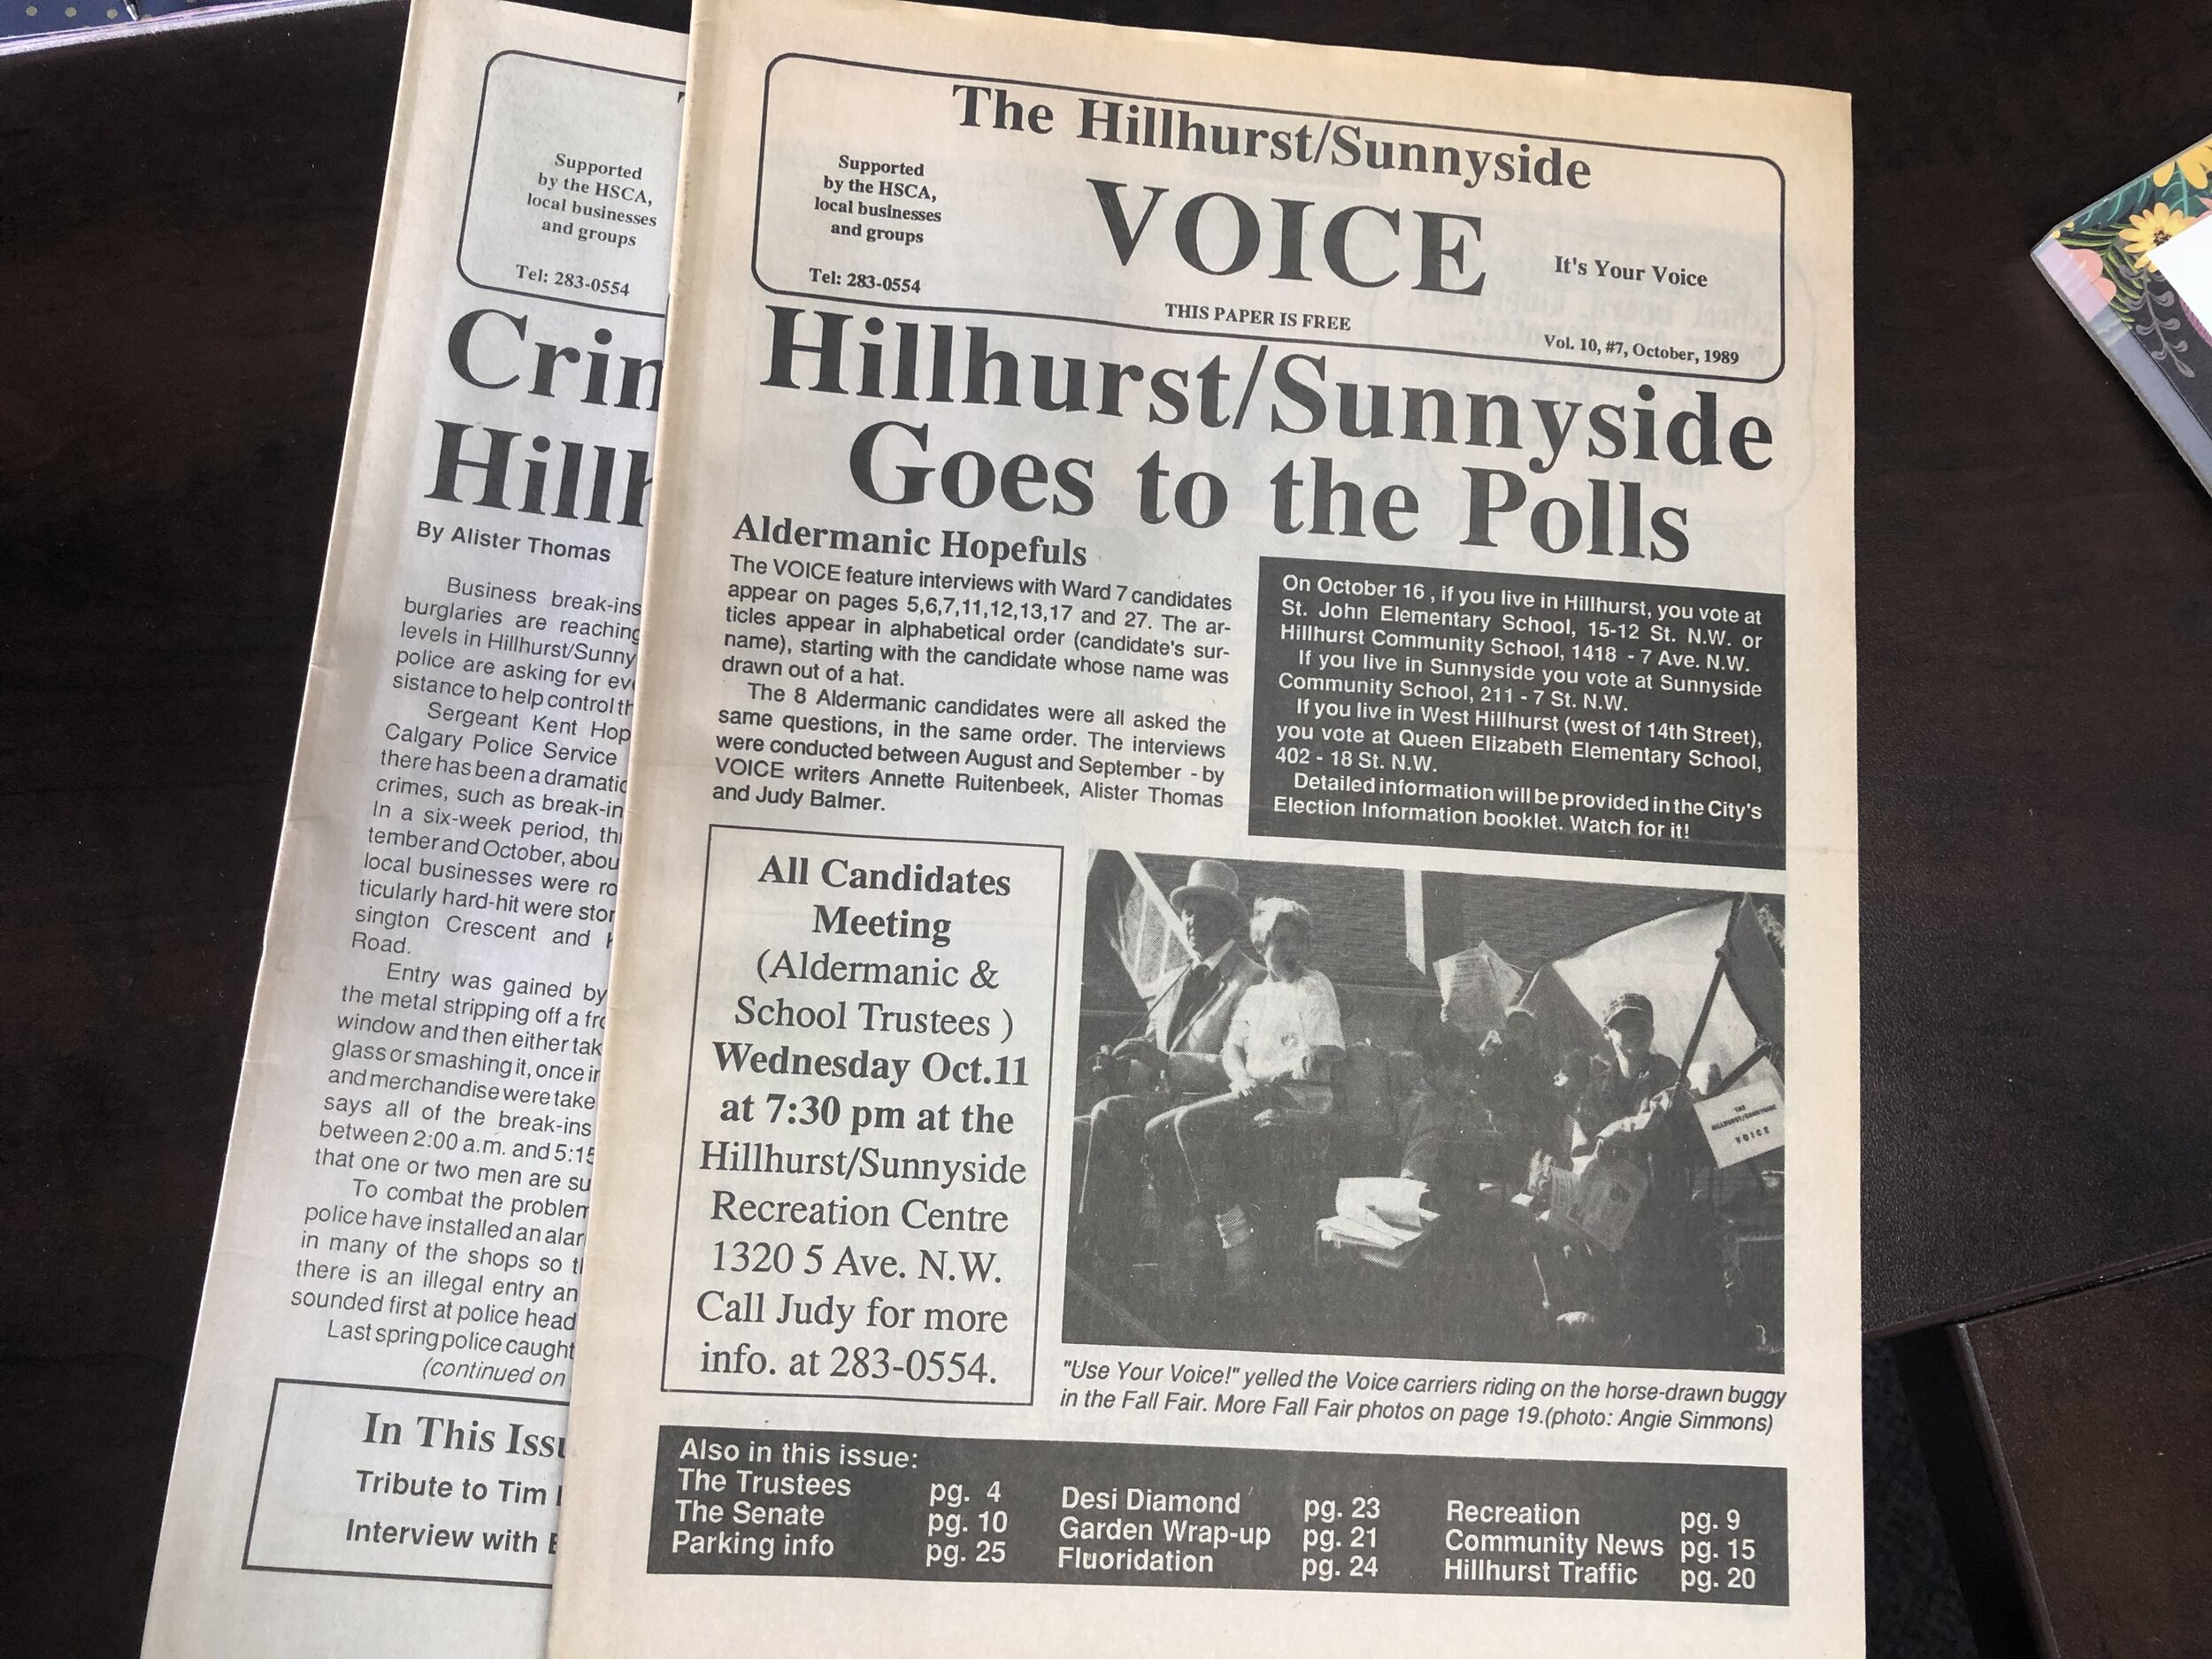 (Pictured) The Hillhurst Sunnyside Voice, October 1989 Edition